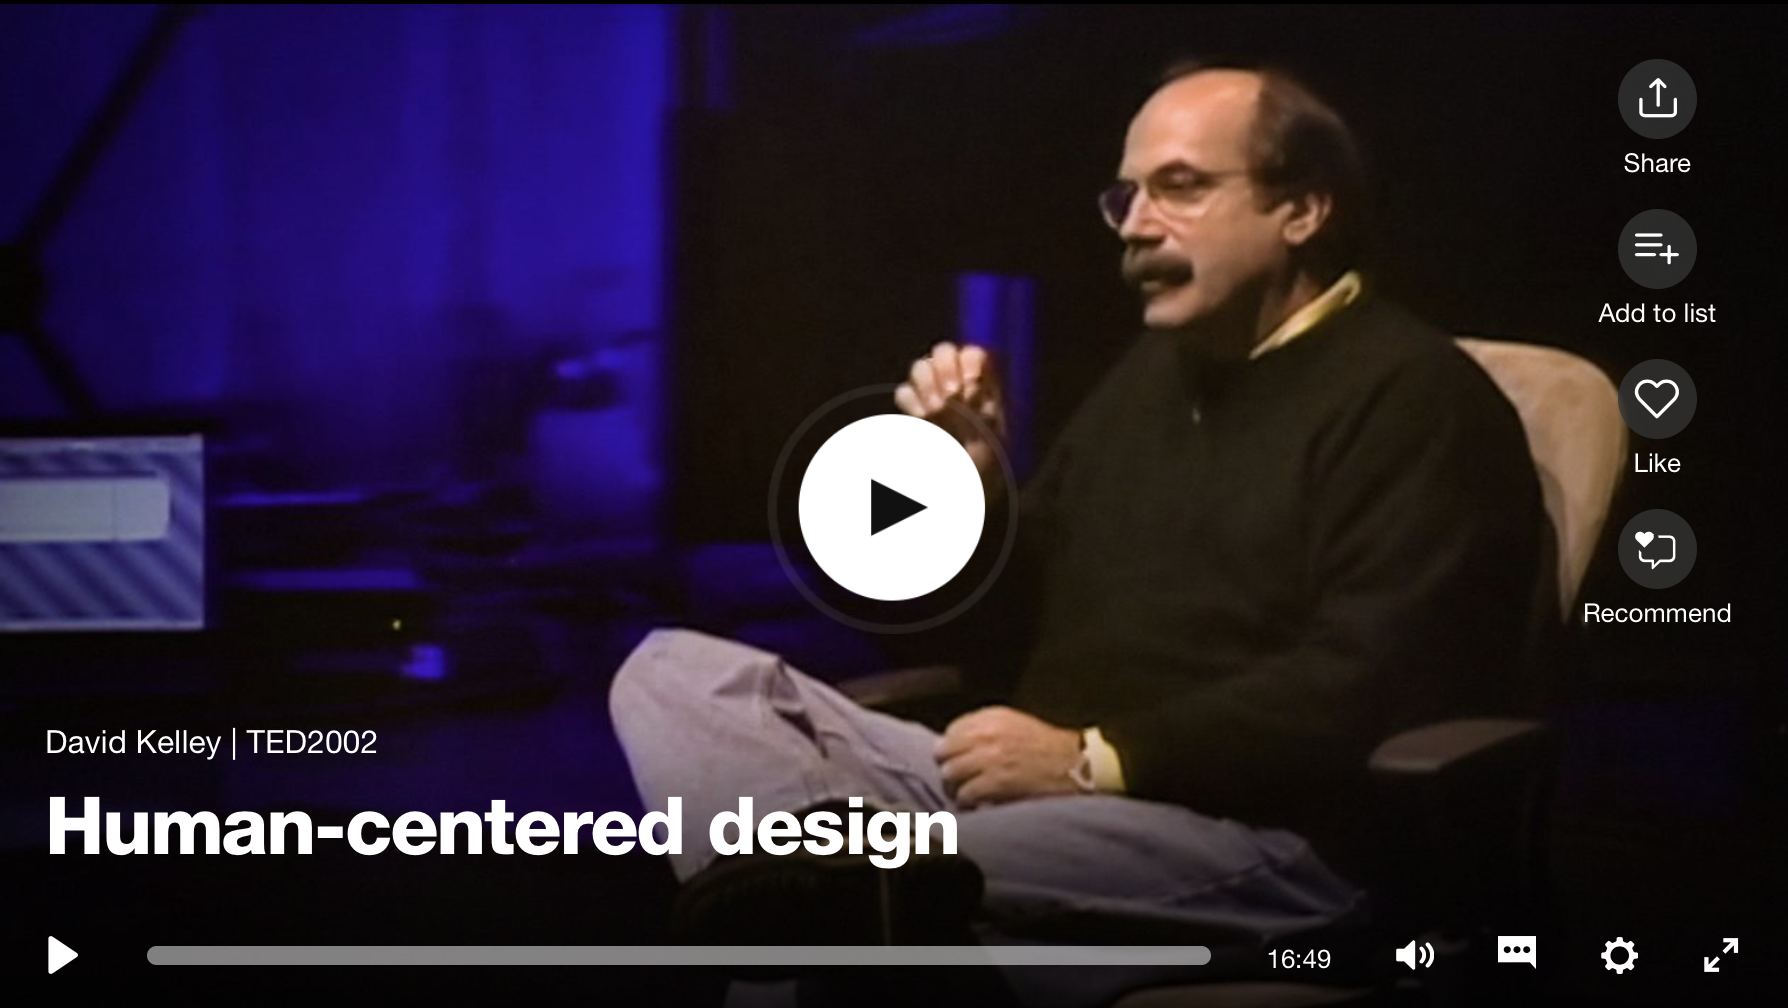 Thumbnail of video titled Human Centered Design